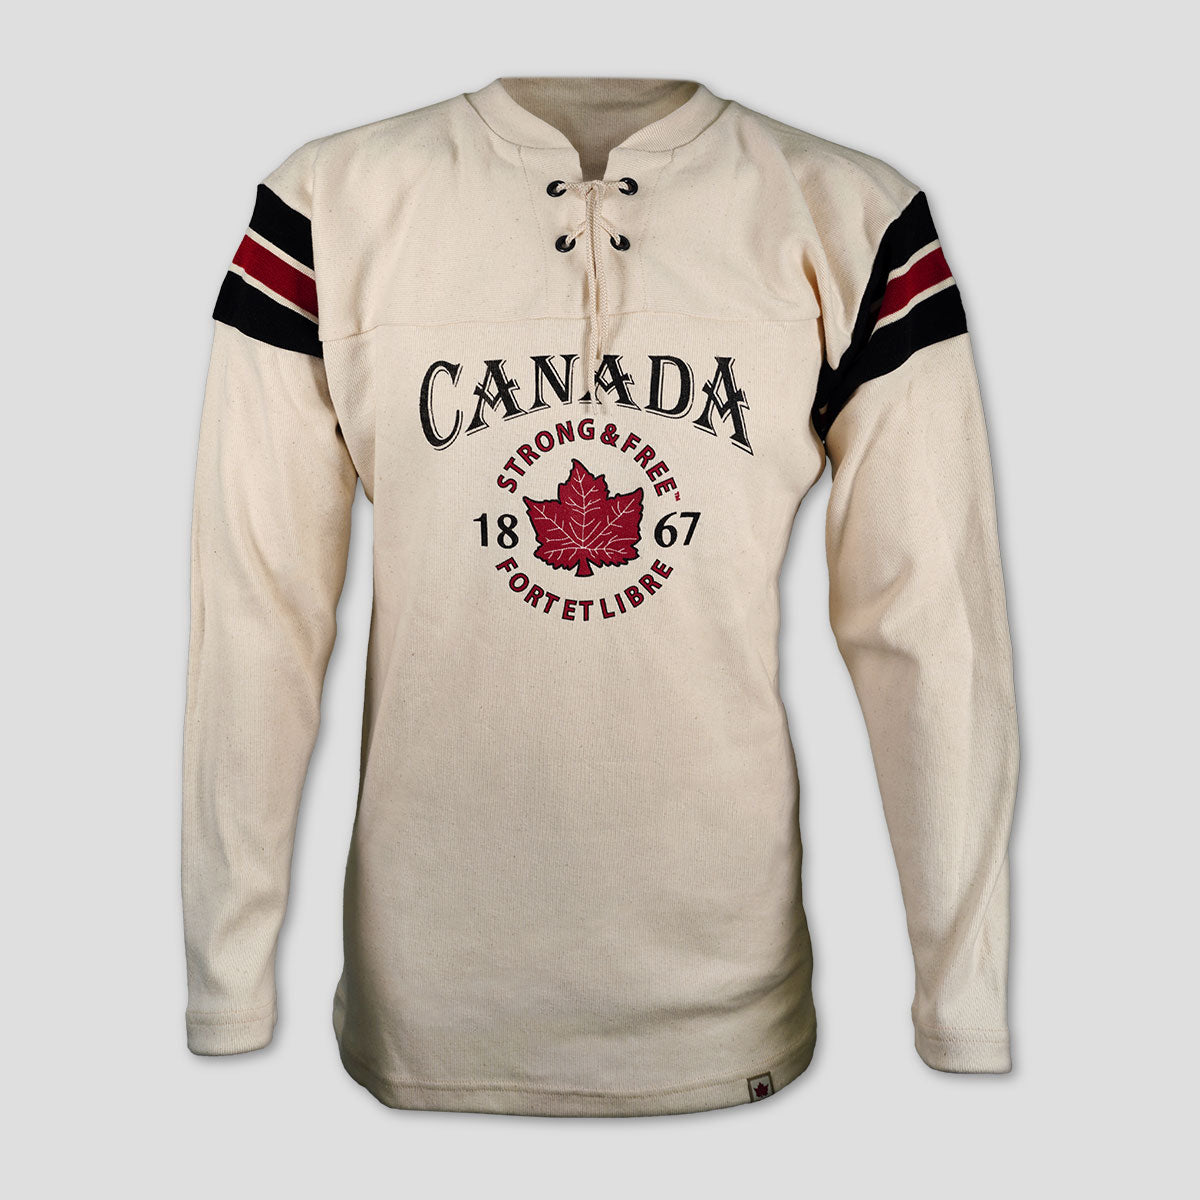 Strong & Free Heritage Hockey Jersey